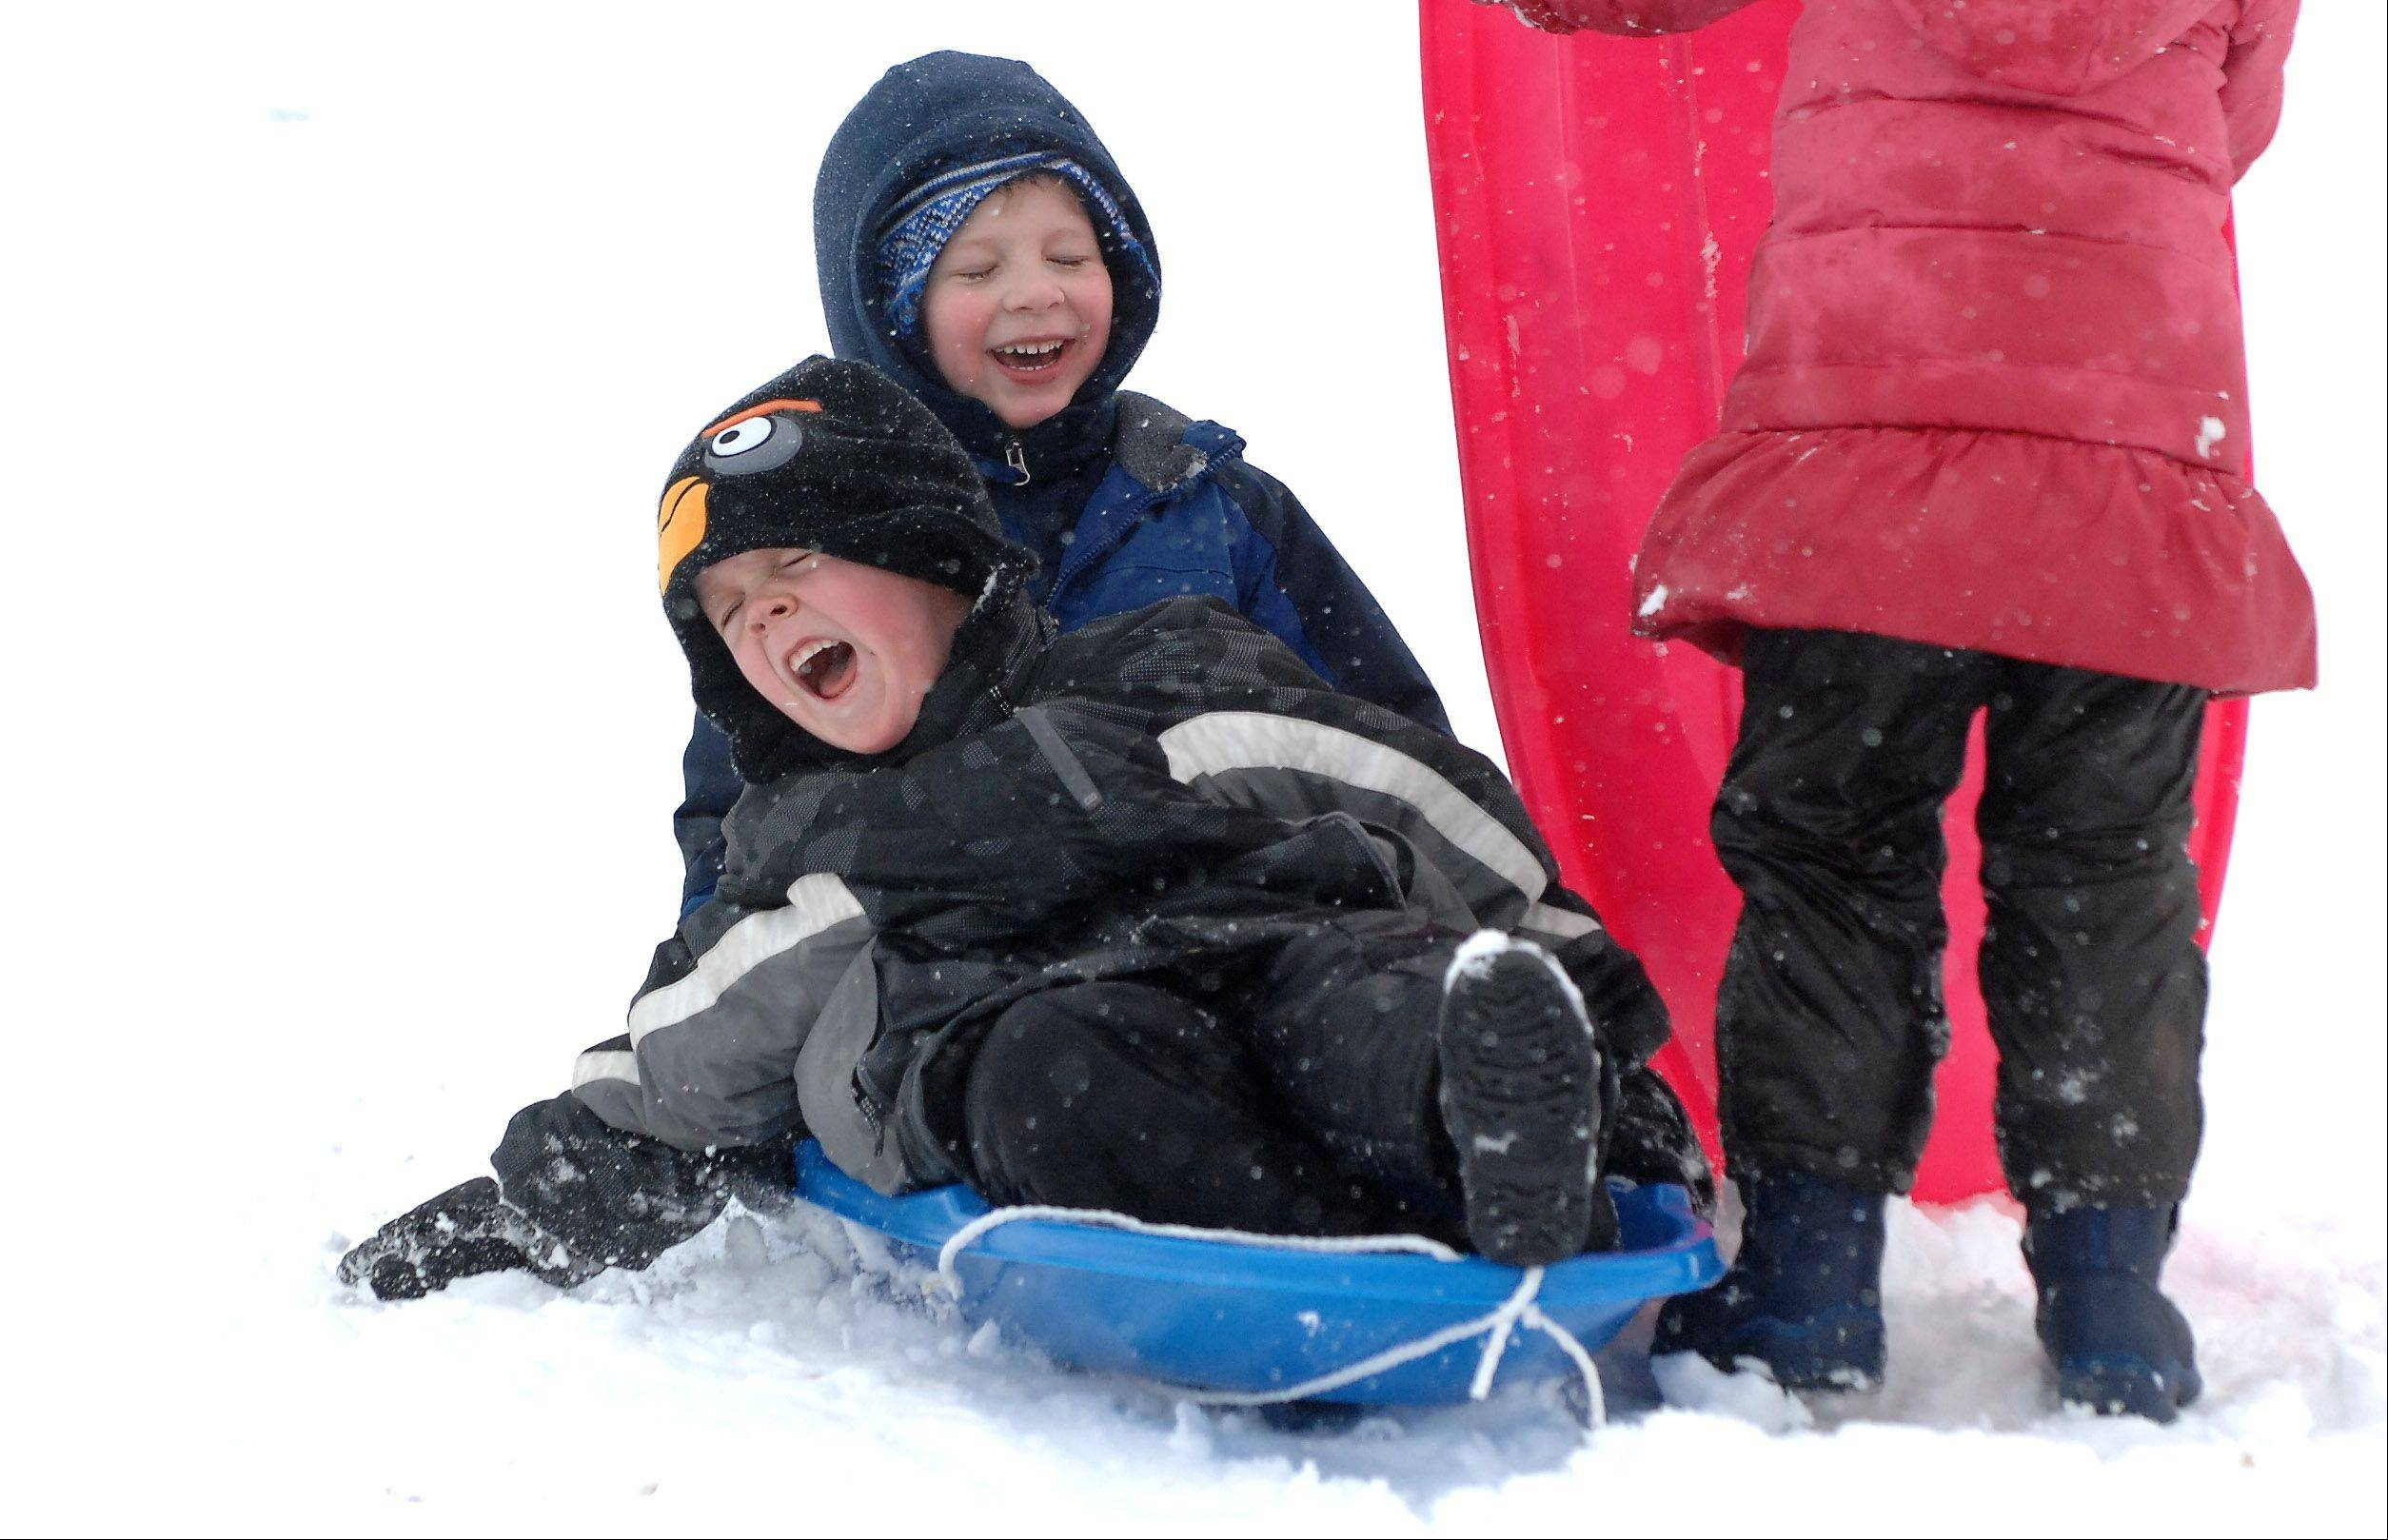 Jack Magee, 4, of Carpentersville, screams and tries to steer to keep from hitting someone while sledding with Jacob Jones, 5, of Gilberts, at Randall Oaks Park in West Dundee Wednesday.